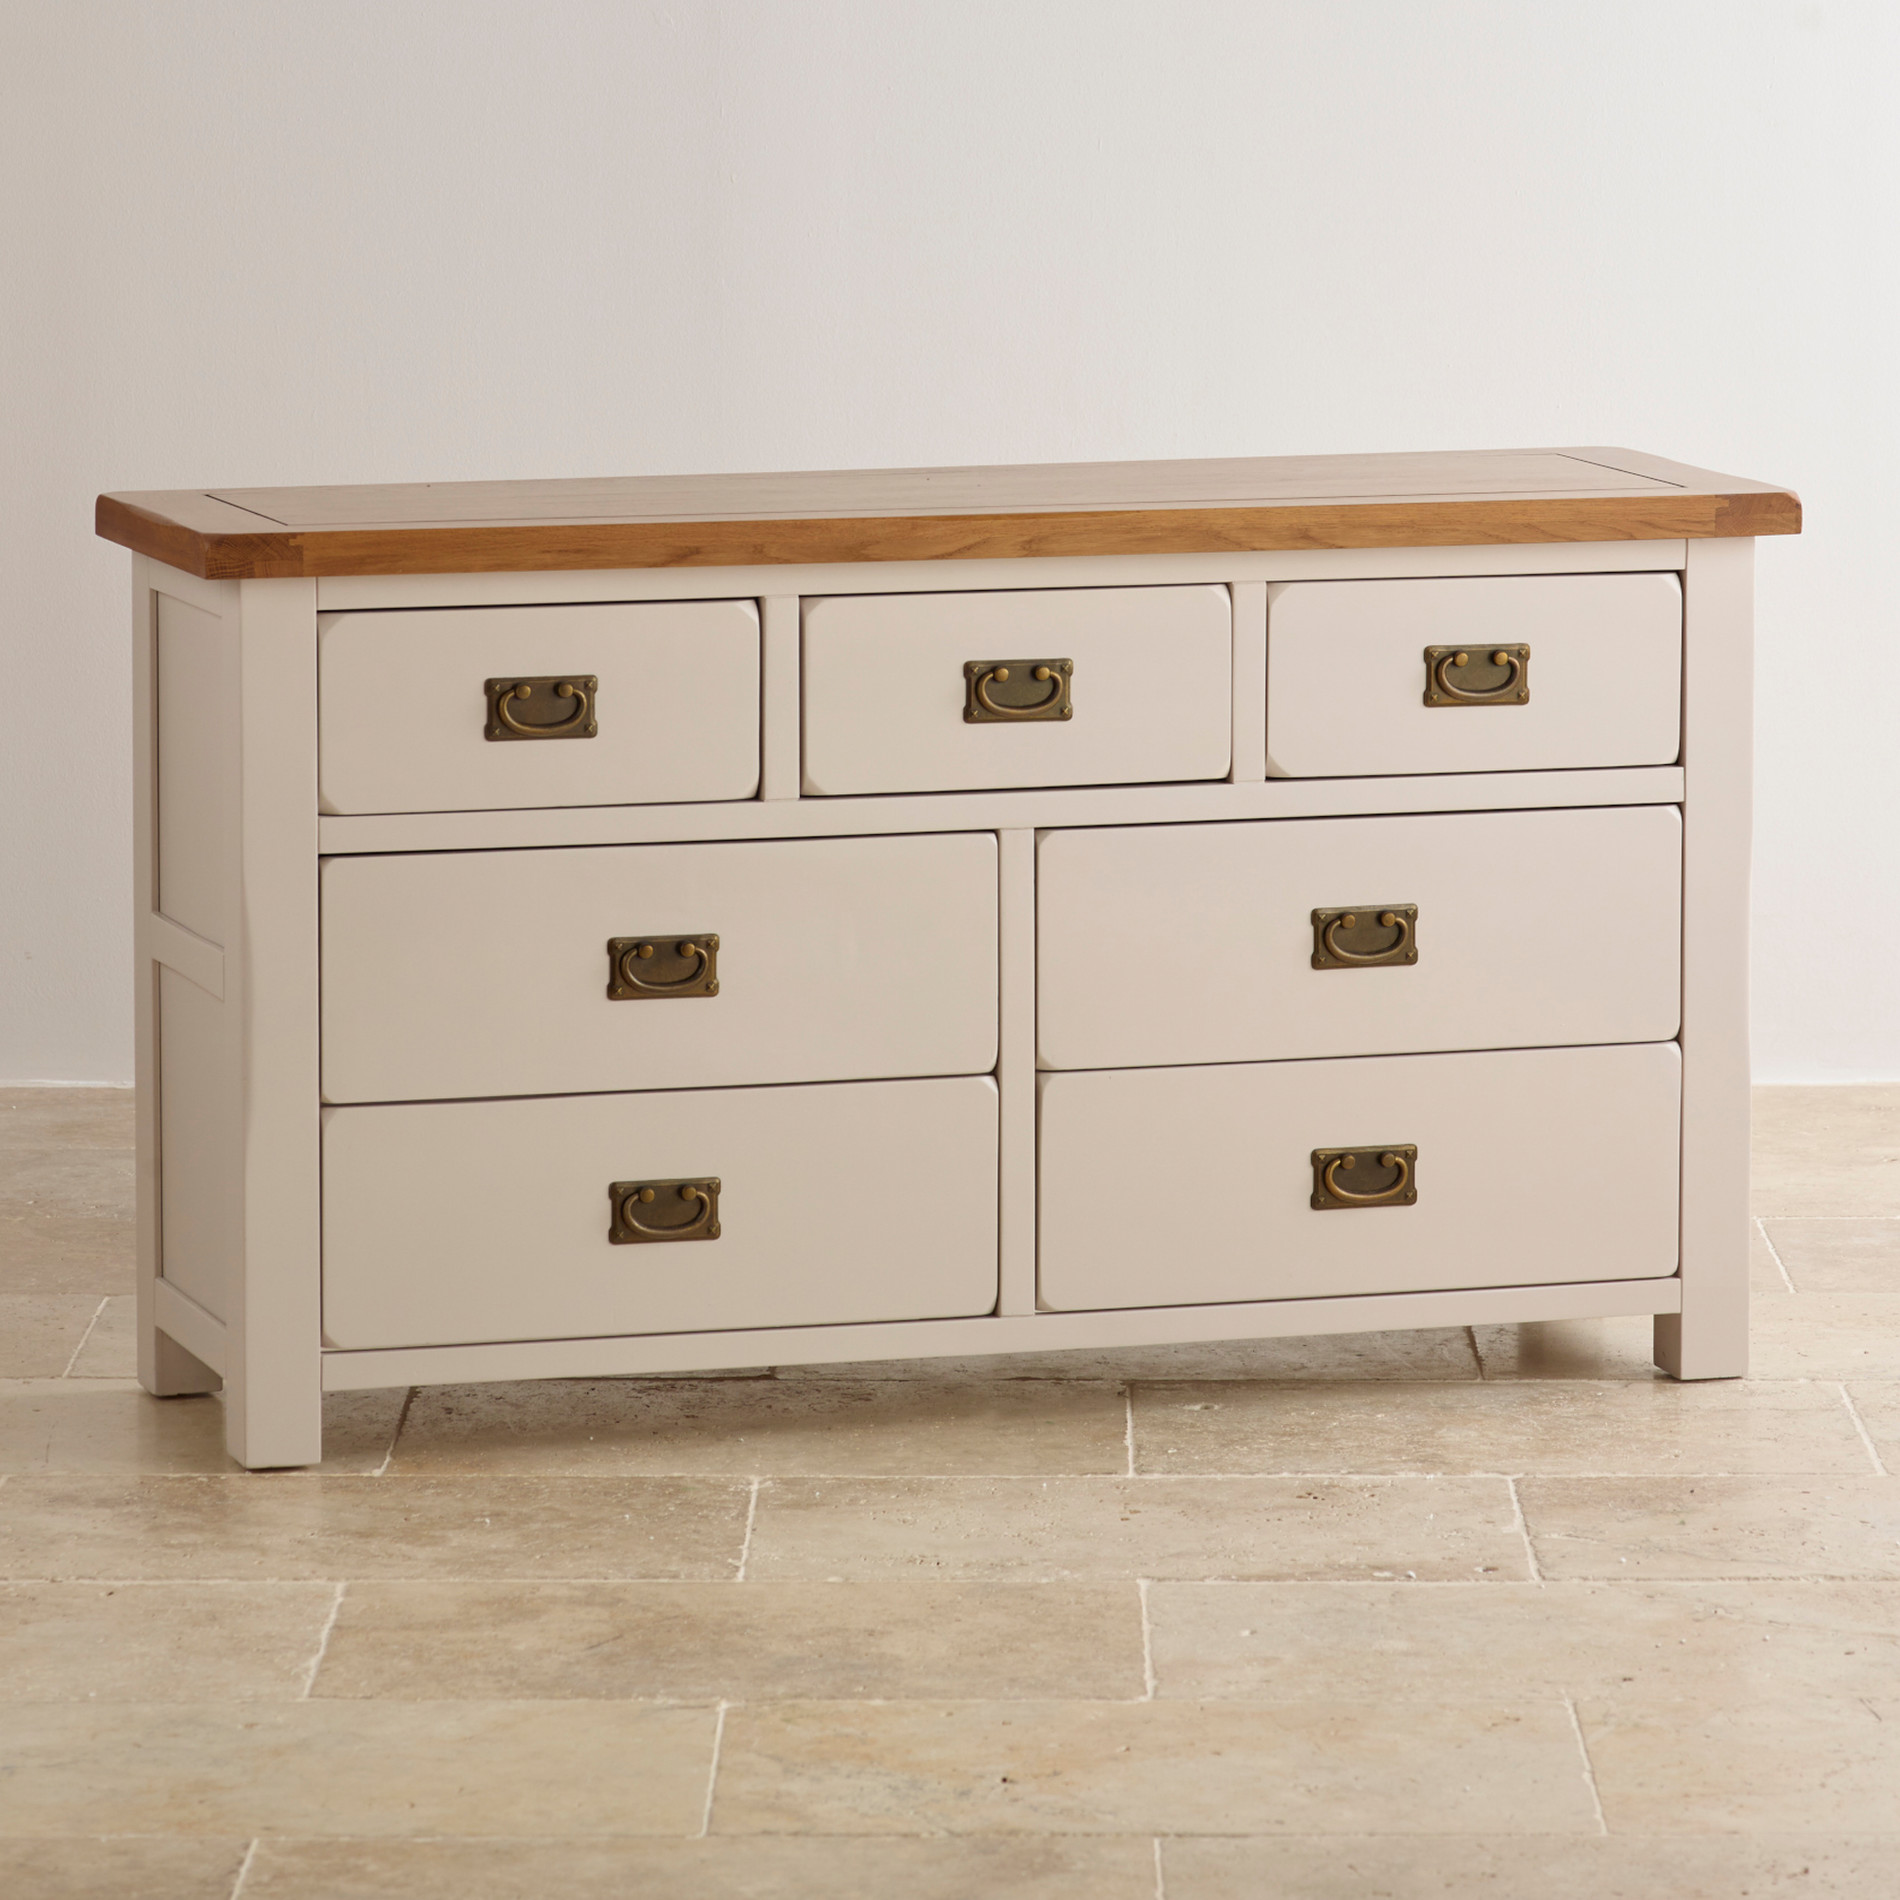 Dining Room Chest Of Drawers: Kemble 3+4 Chest Of Drawers In Rustic Painted Solid Oak